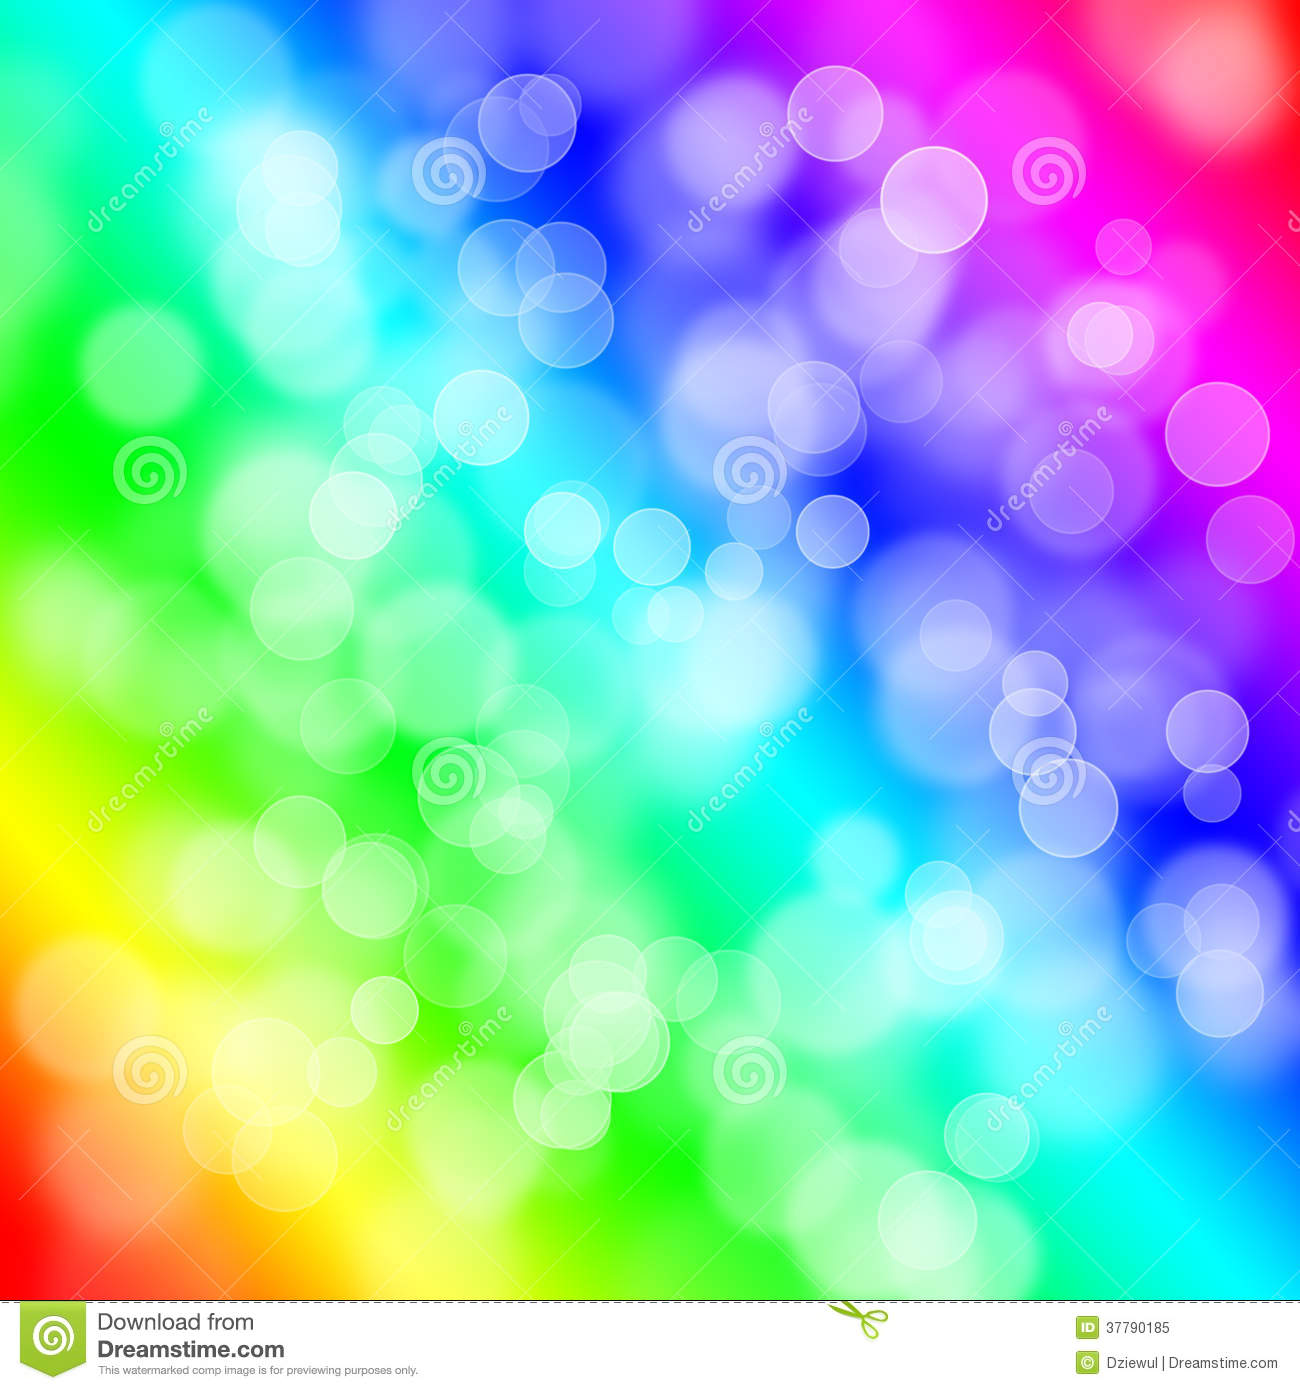 Abstract Bubbles Cute Colorful Wallpaper